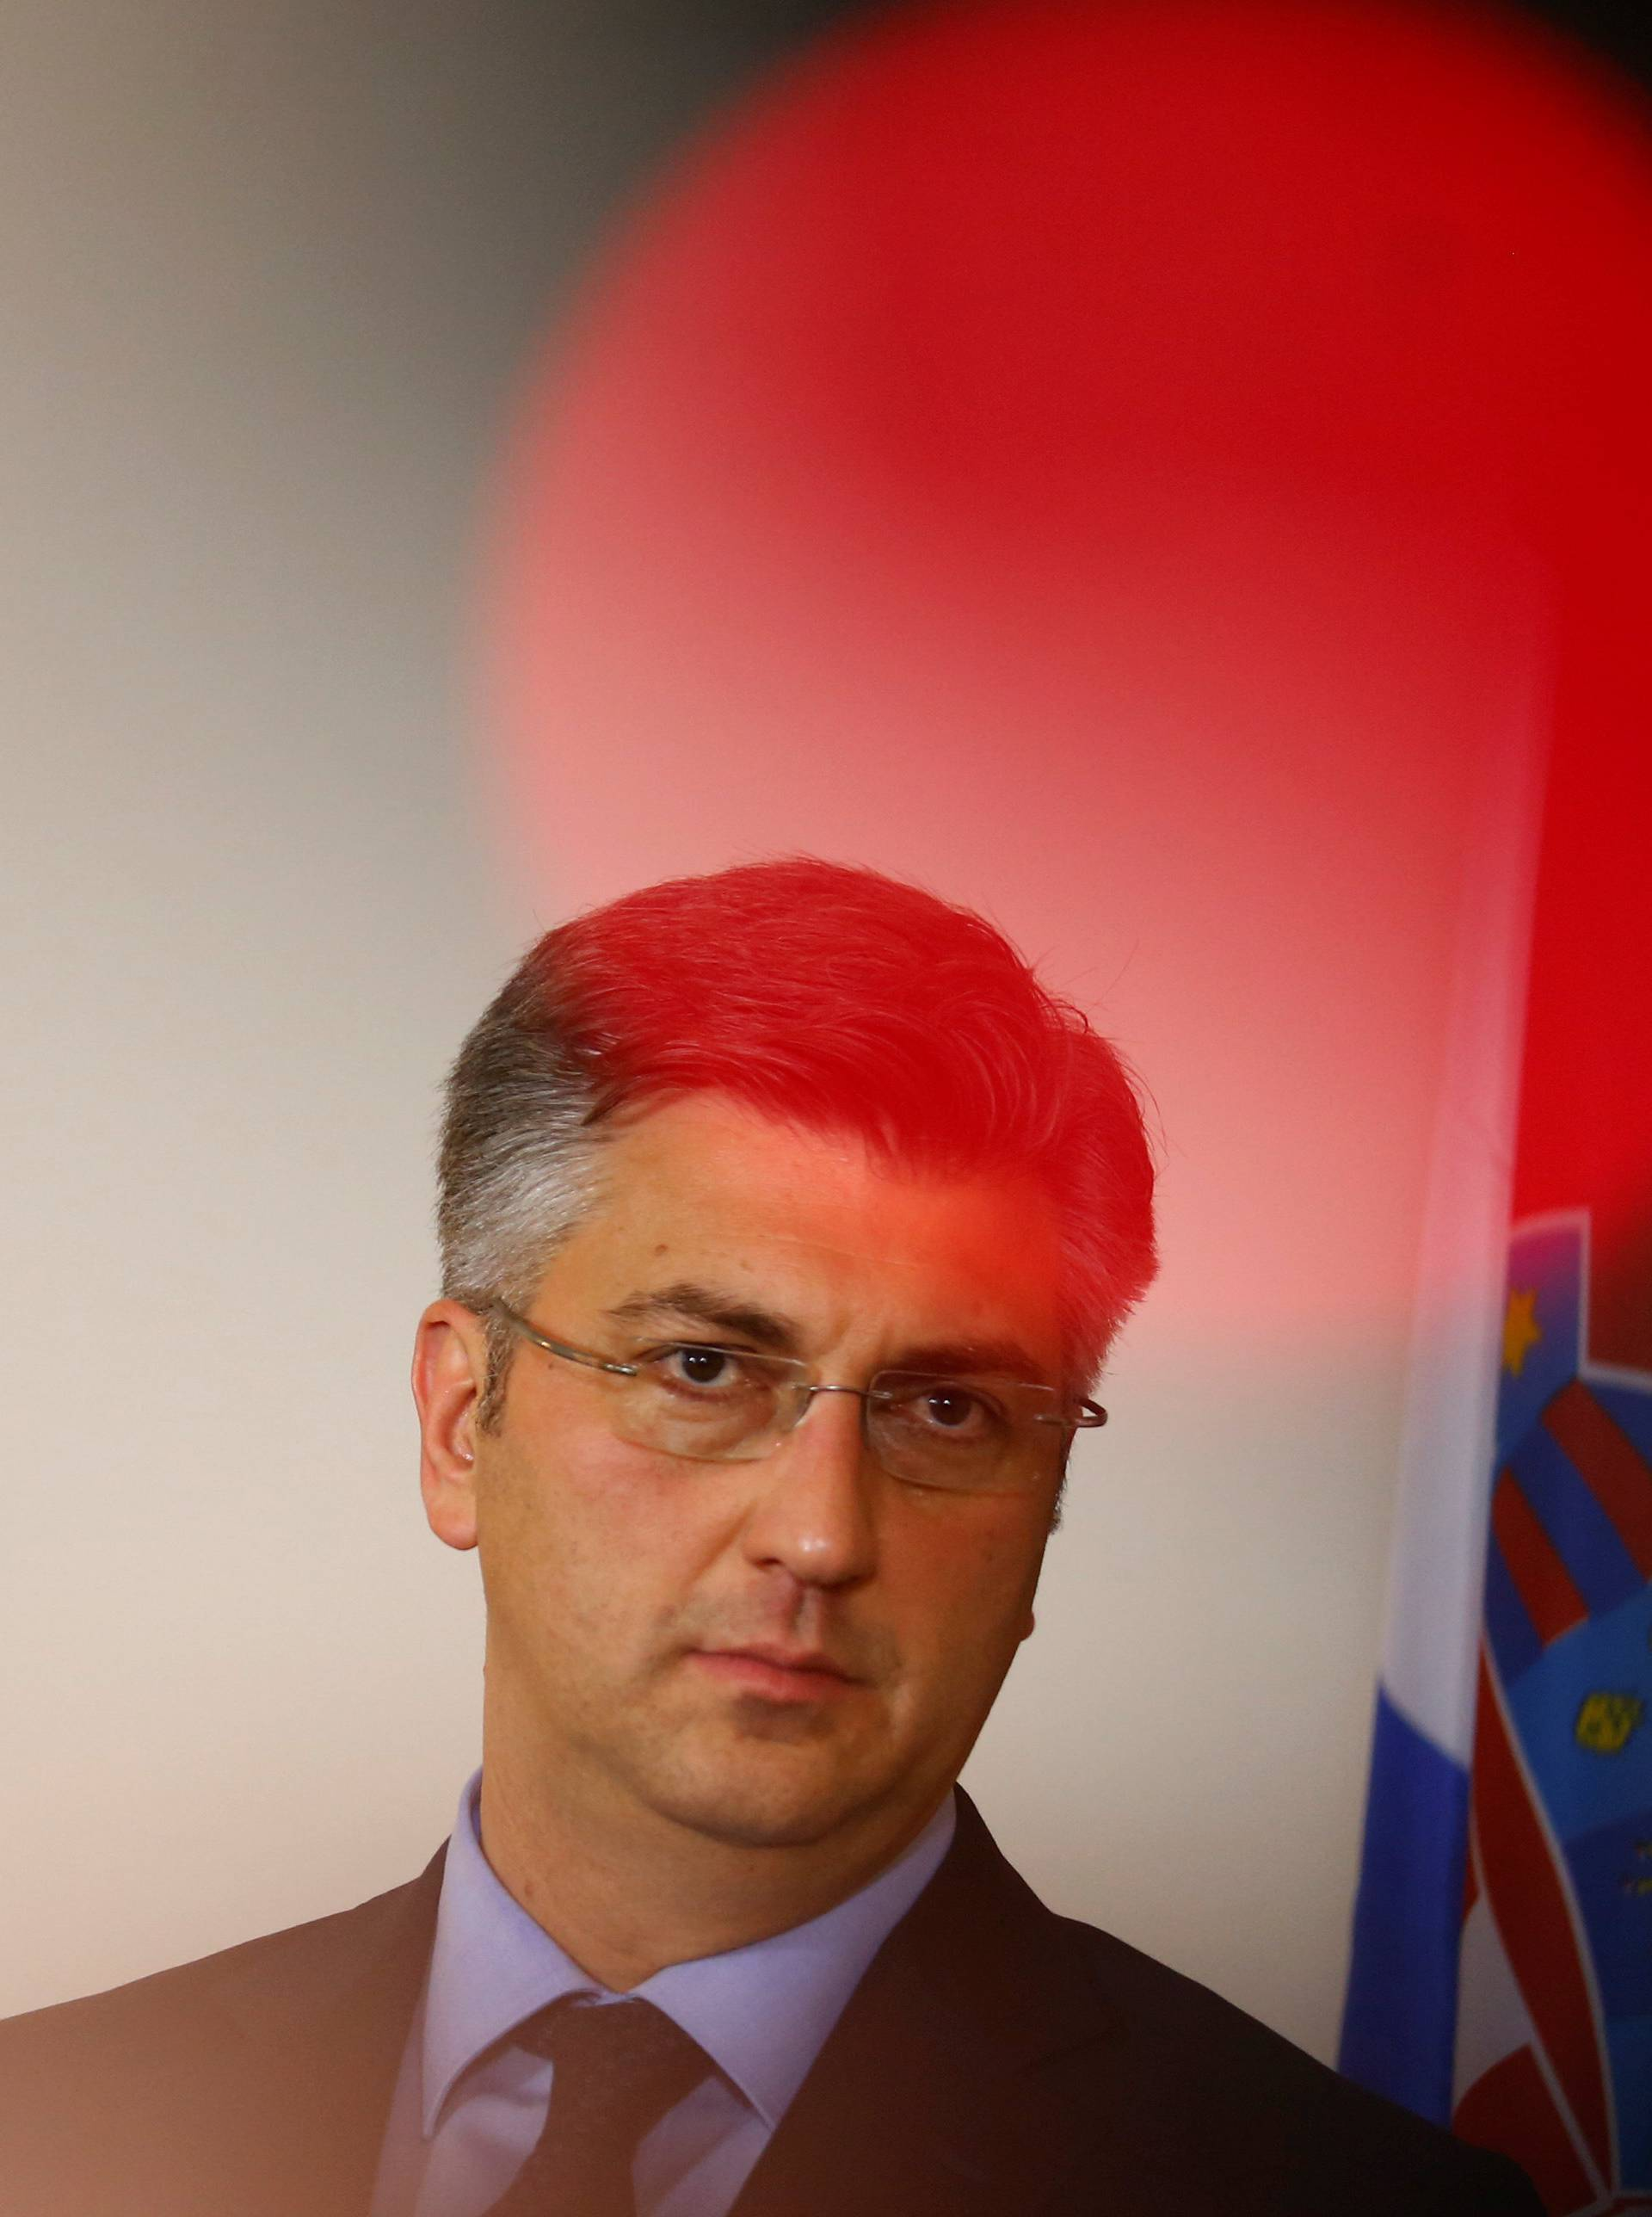 Croatian Prime Minister Plenkovic addresses a news conference in Vienna